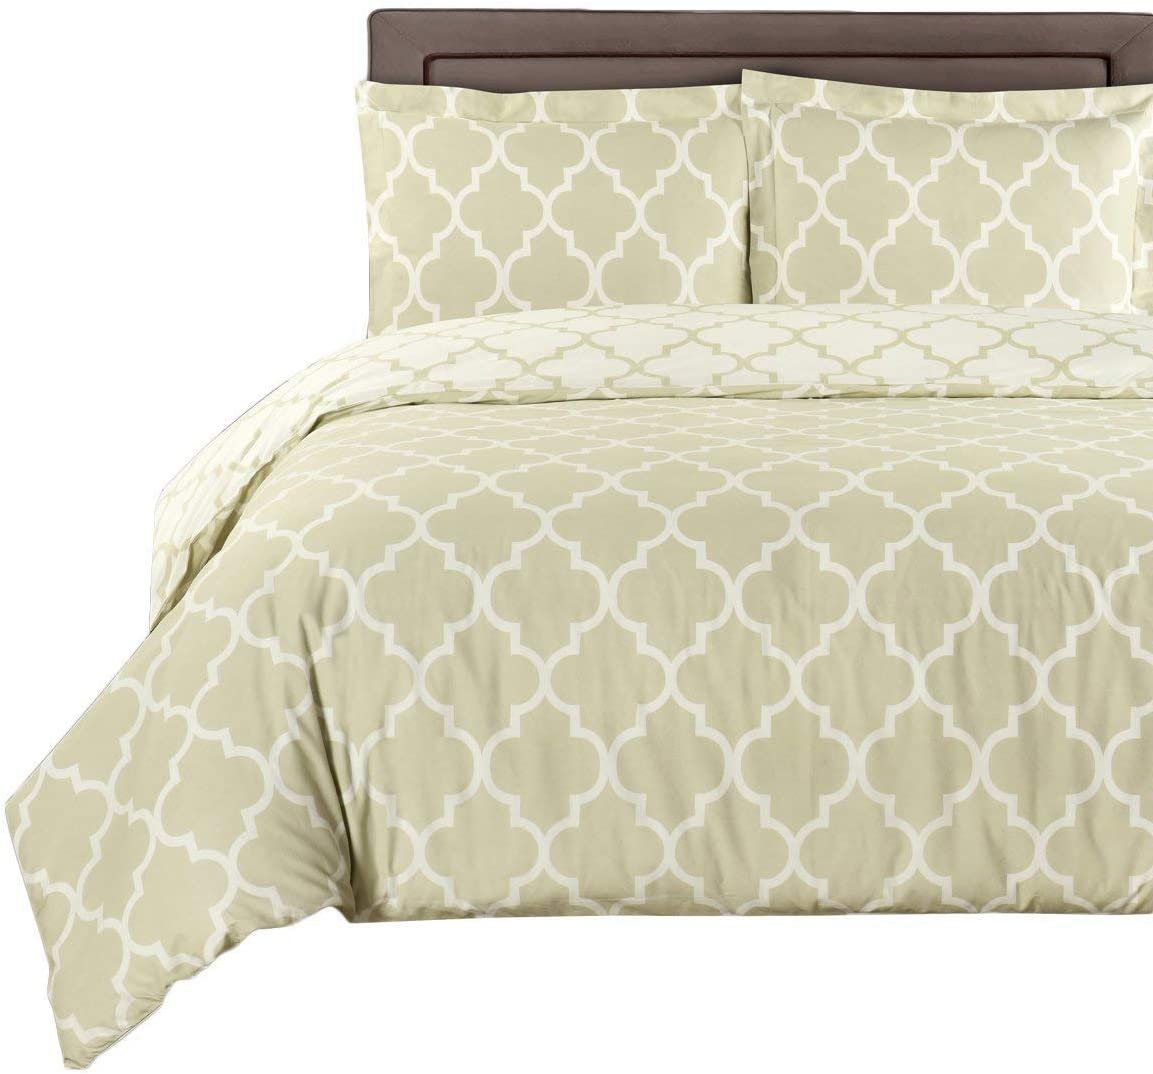 Beige-Linen and Ivory Meridian 8-Piece King Bed-in-a-Bag Including 100/% Egyptian Cotton 300 Thread Count by Royal Hotel